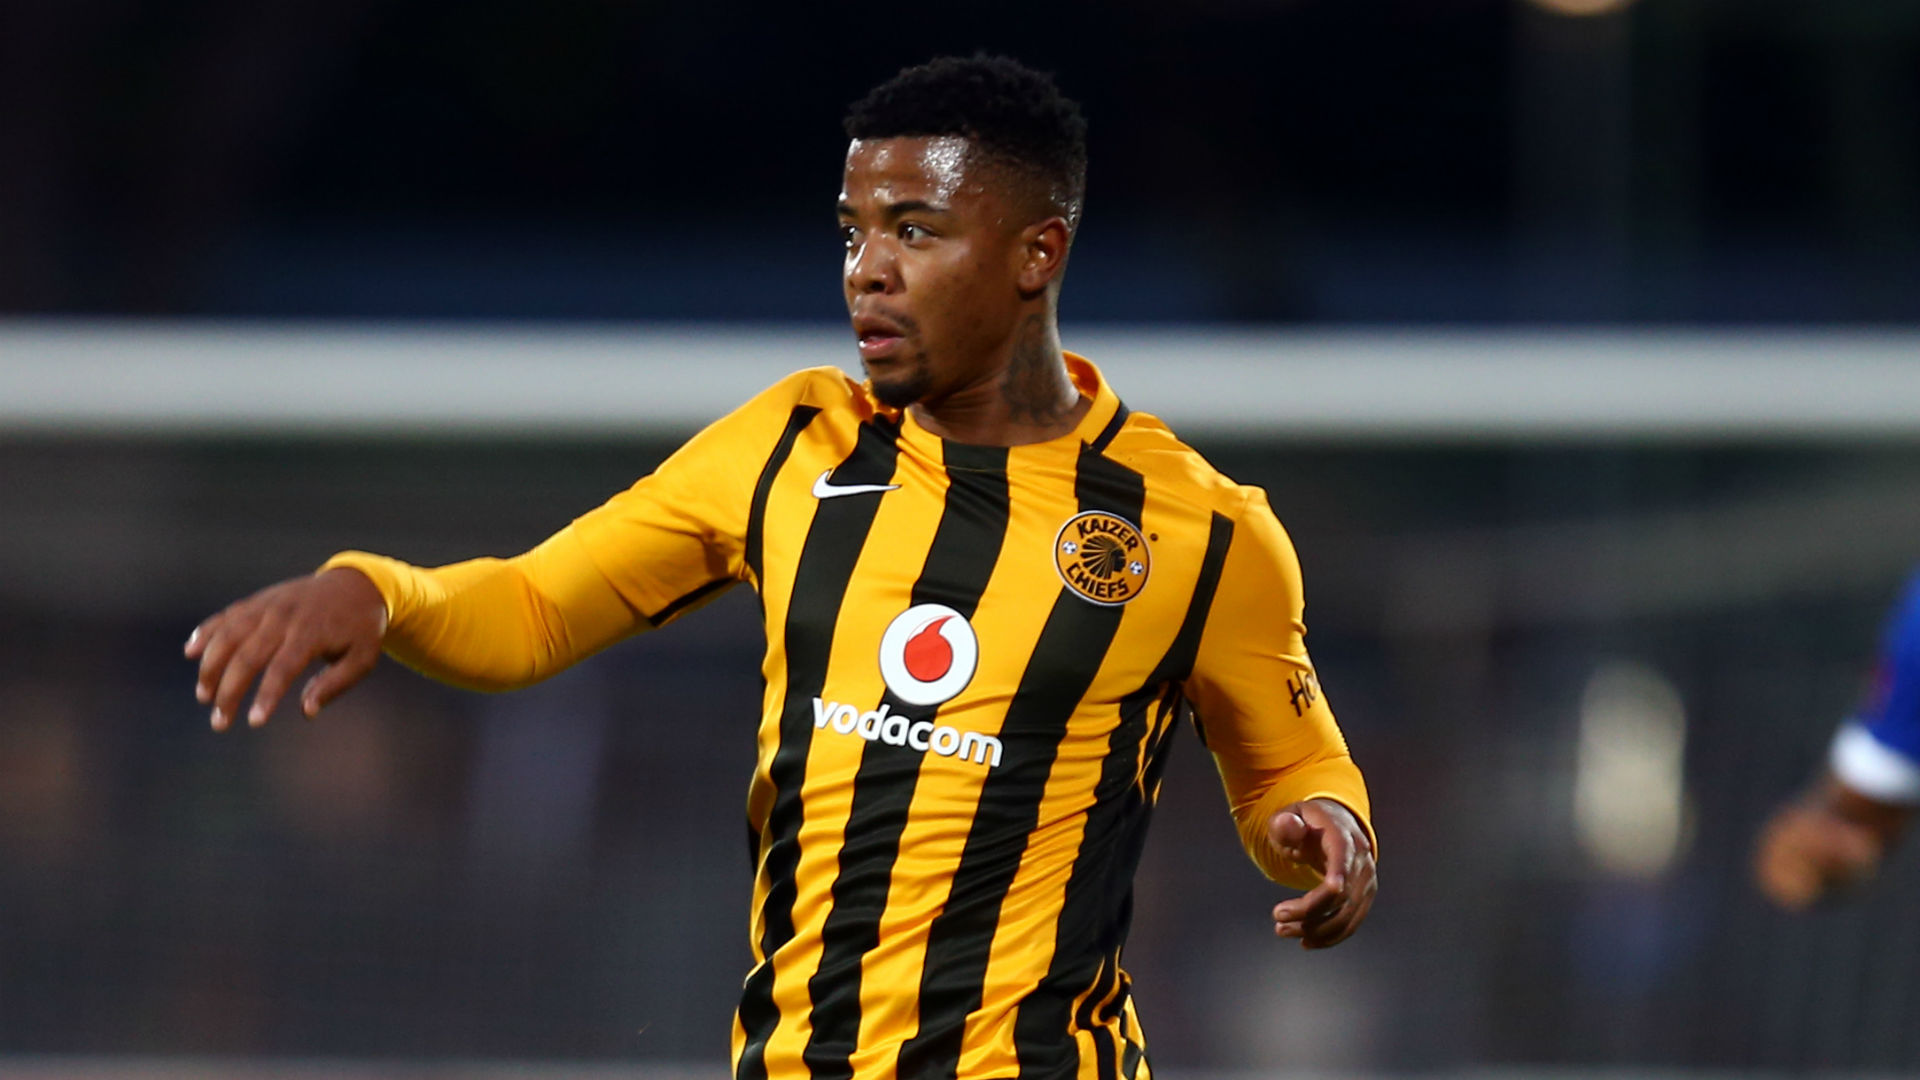 Kaizer Chiefs: George Lebese Of Kaizer Chiefs